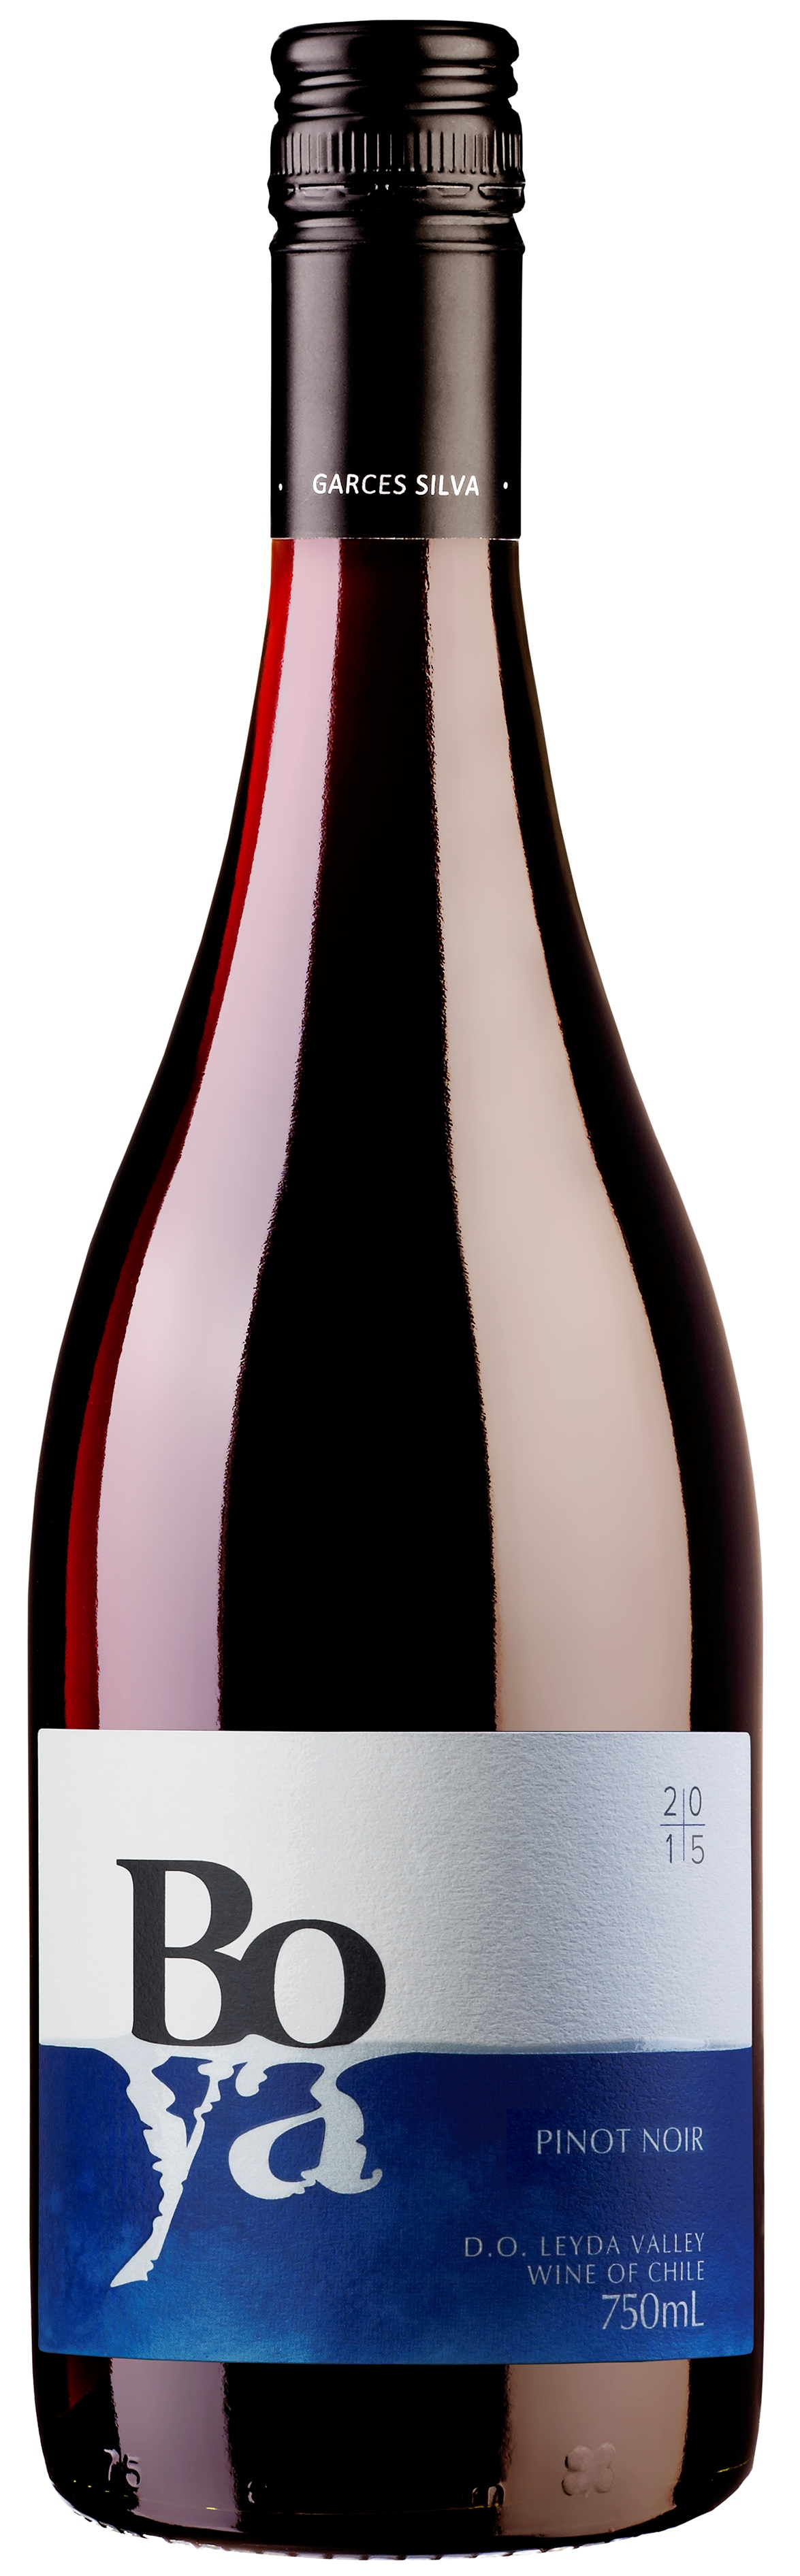 Caudalia Wine Discoveries Marzo 2017 Pinot Noir Chile